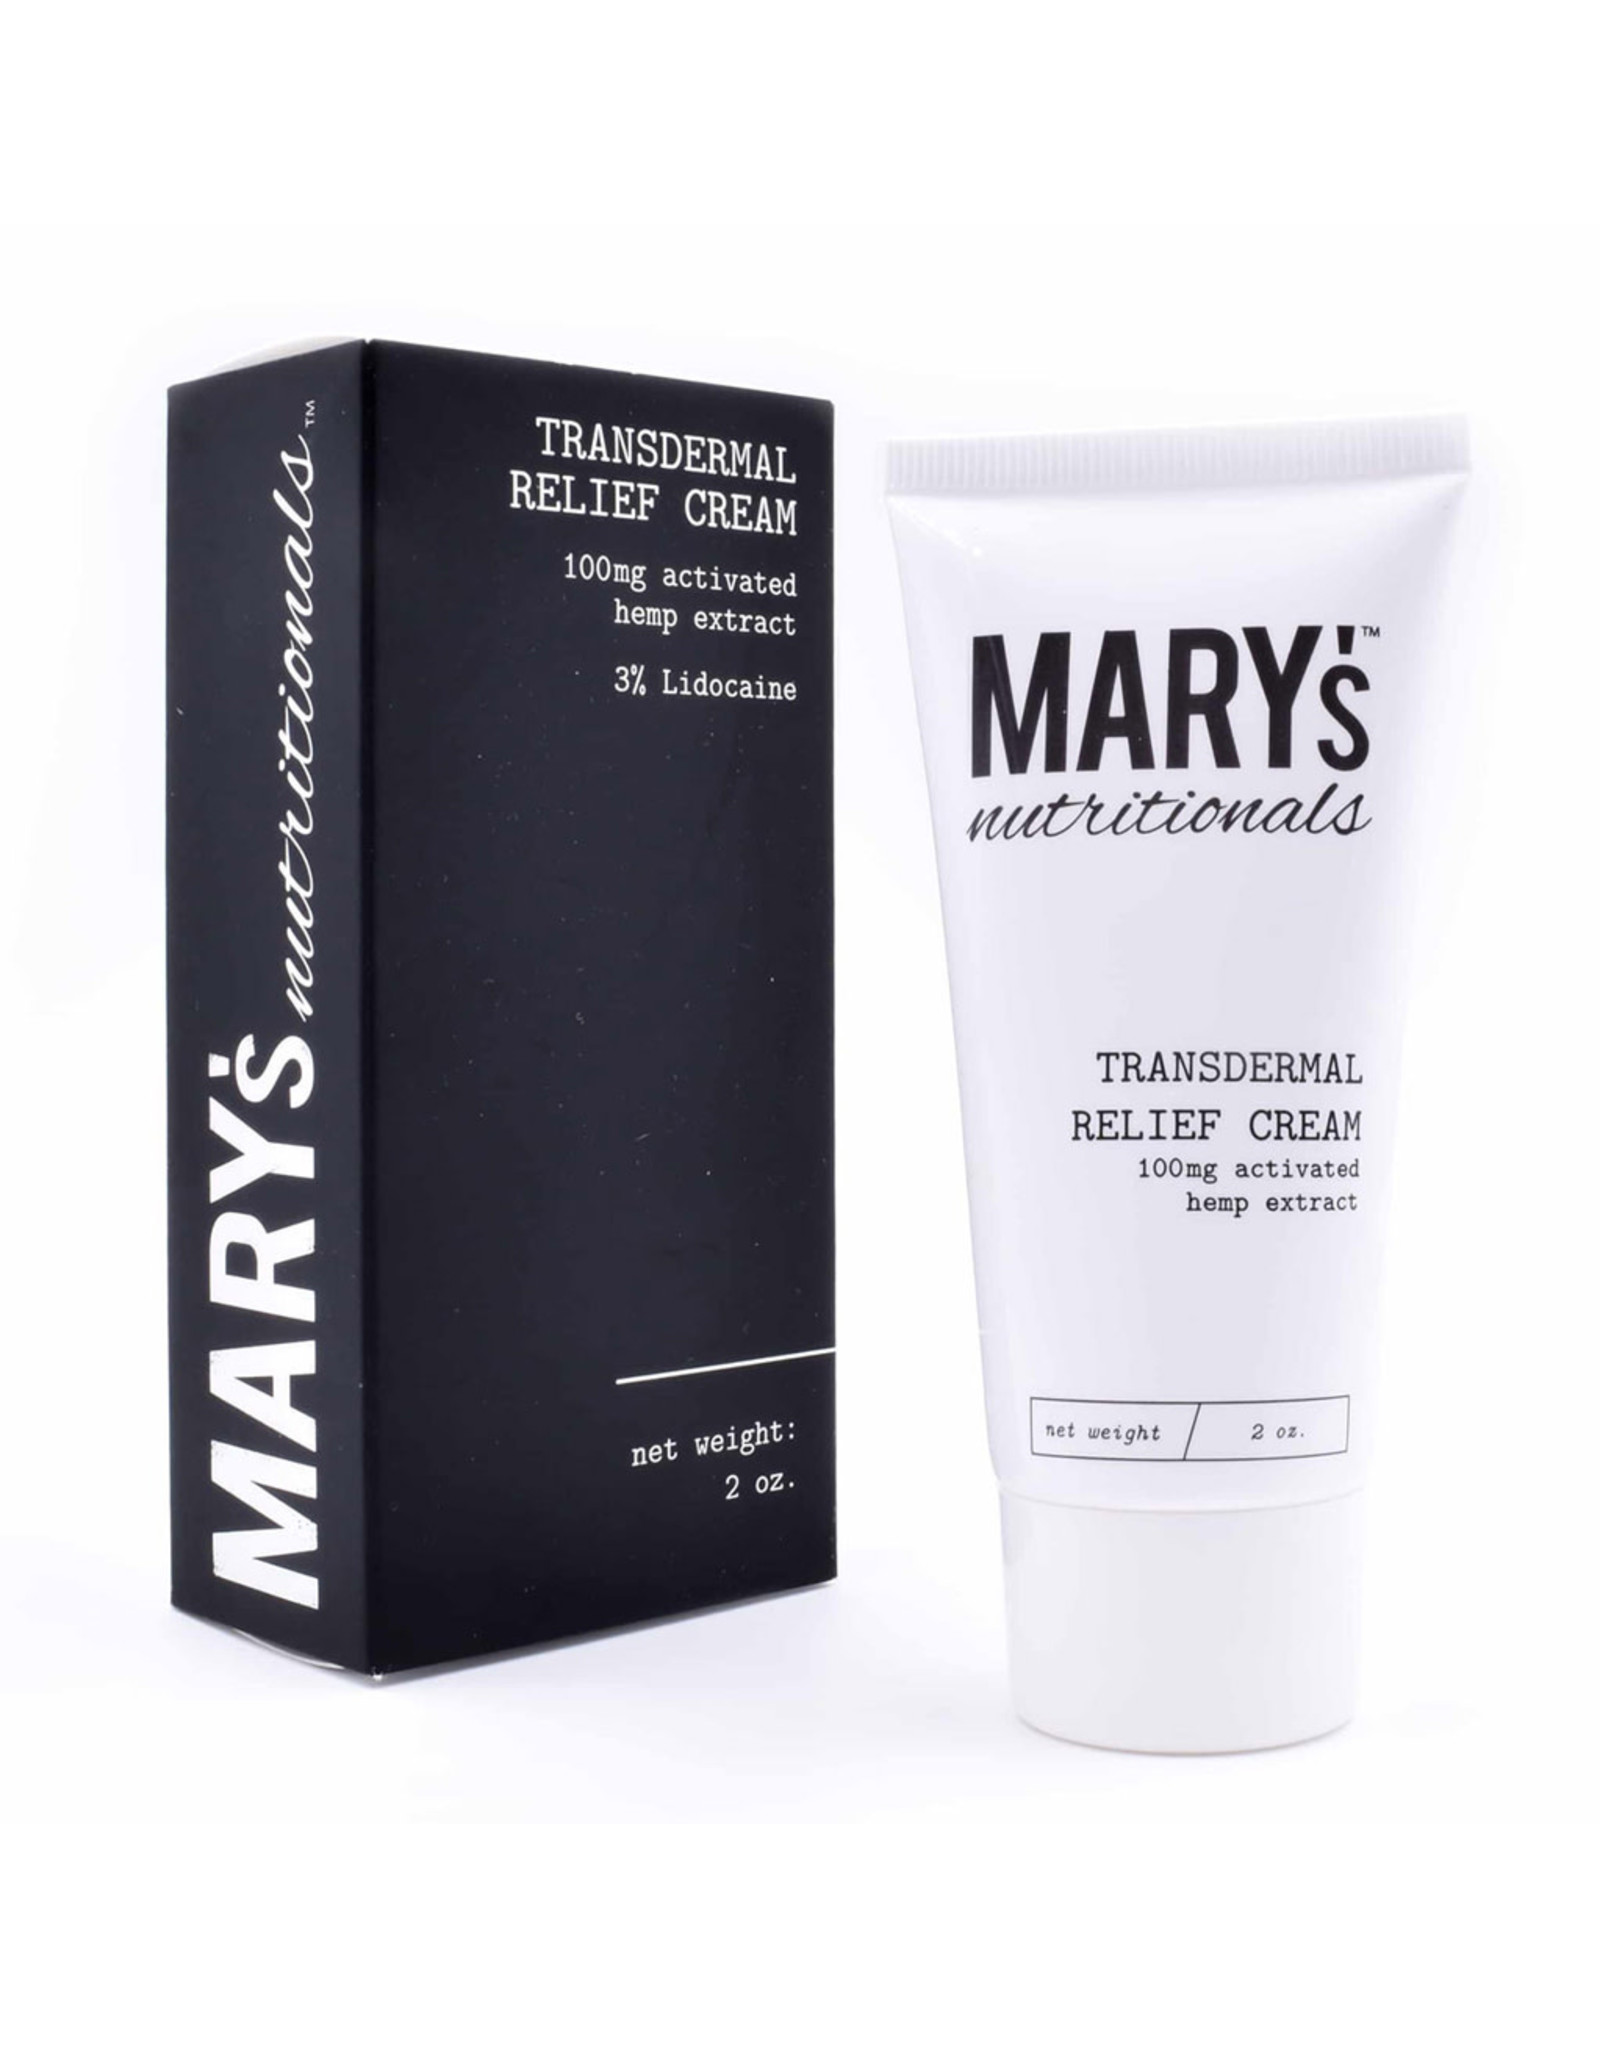 Mary's Nutritionals Mary's Nutritionals 100mg 2oz Transdermal Relief Cream